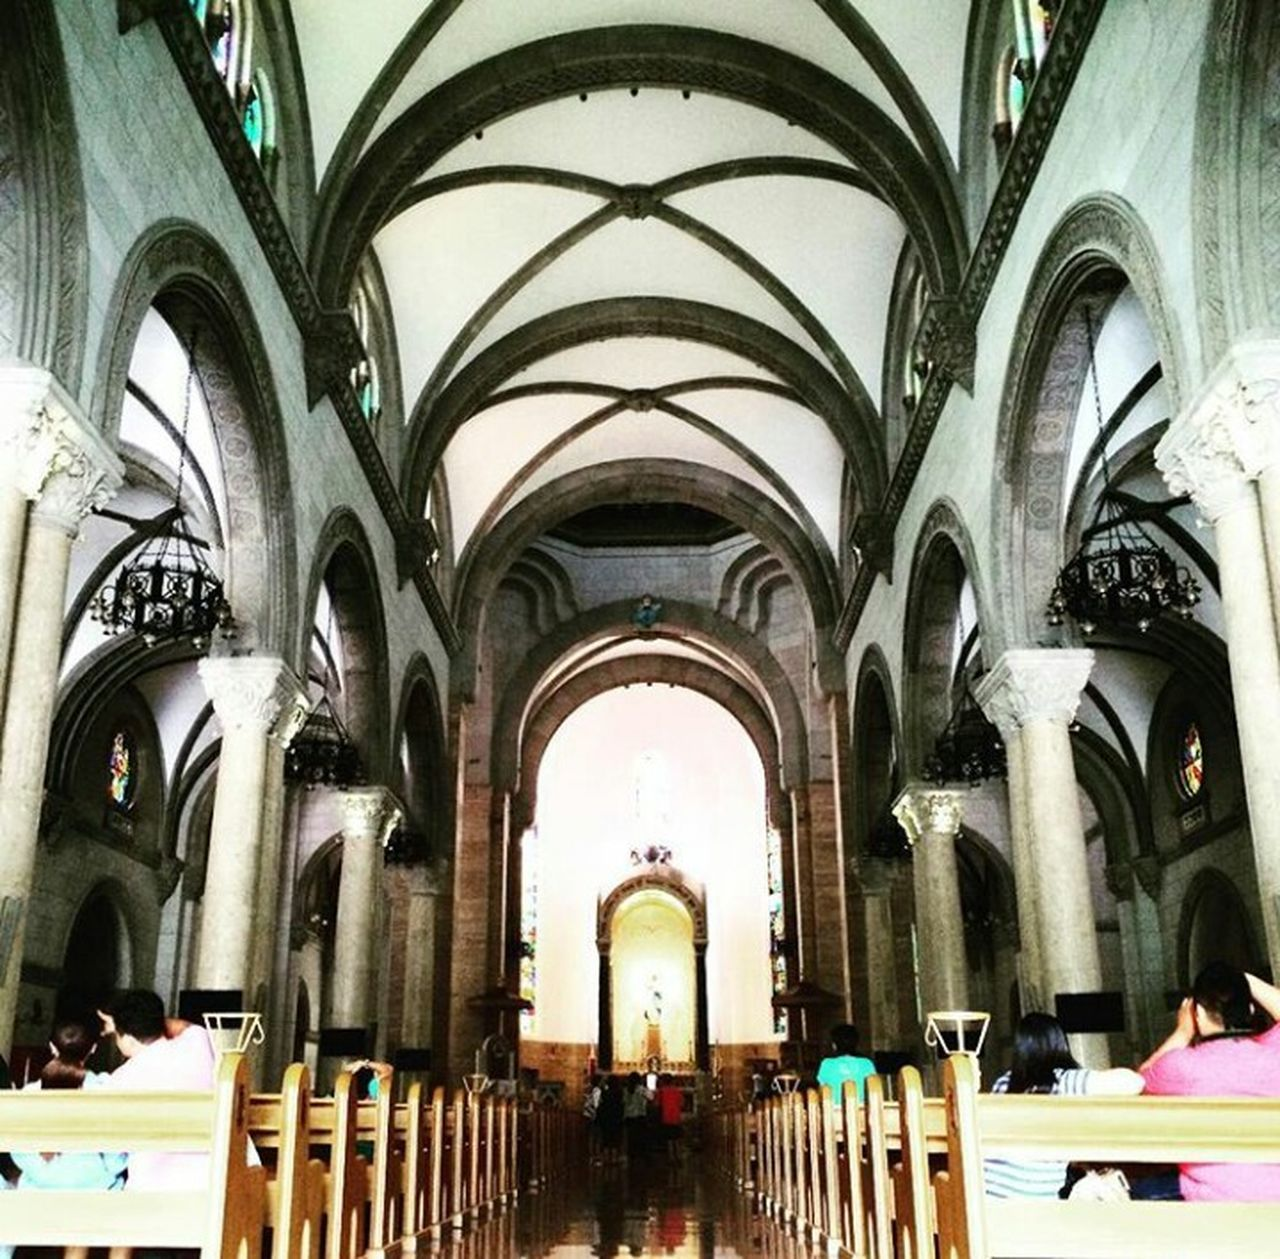 Manila Cathedral Church Old Century Arch Architecture Design Intricate Detailed Echo Ceiling Wood Altar Chair Brown Spaniard Colonization X Cross Structure Structural High Ceiling Confession Quiet ContentmentPrayer